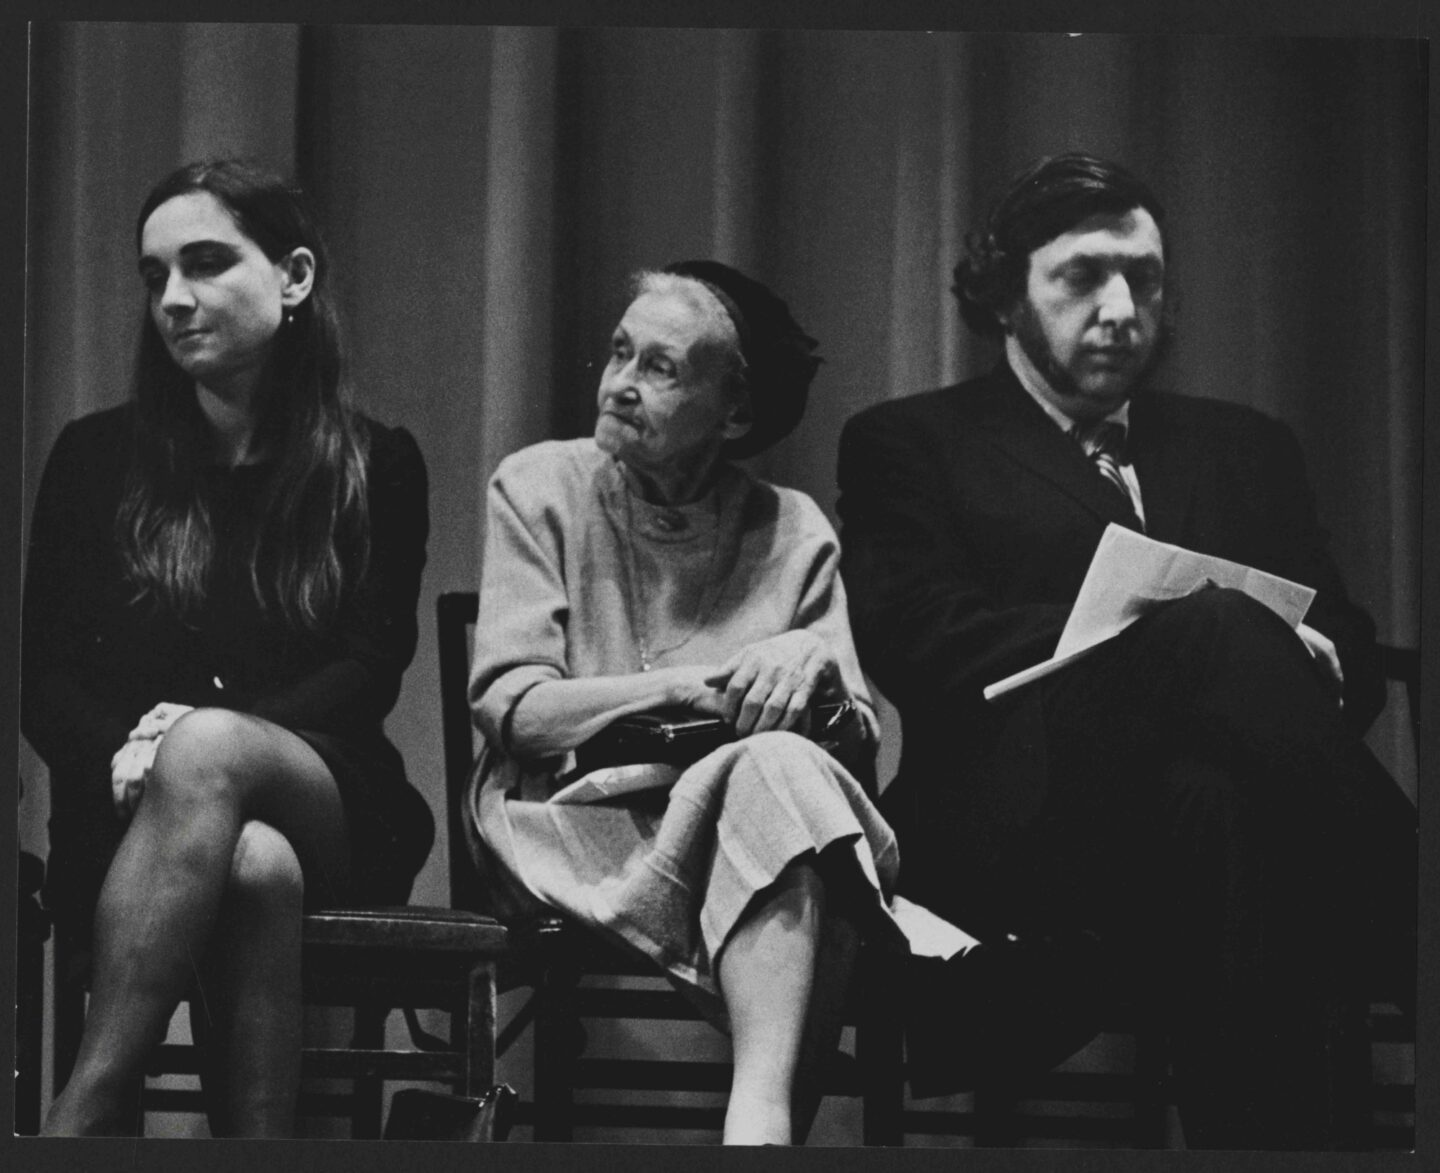 """<p>Kadia Molodowsky seated between Adrienne Rich and John Hollander at a&nbsp;reading at the <span class=""""numbers"""">92</span><sup class=""""ordinal"""">nd</sup> Street Y&nbsp;on November <span class=""""numbers"""">2</span>, <span class=""""numbers"""">1969</span>. Photo © Arnold Chekow (used with&nbsp;permission).</p>"""